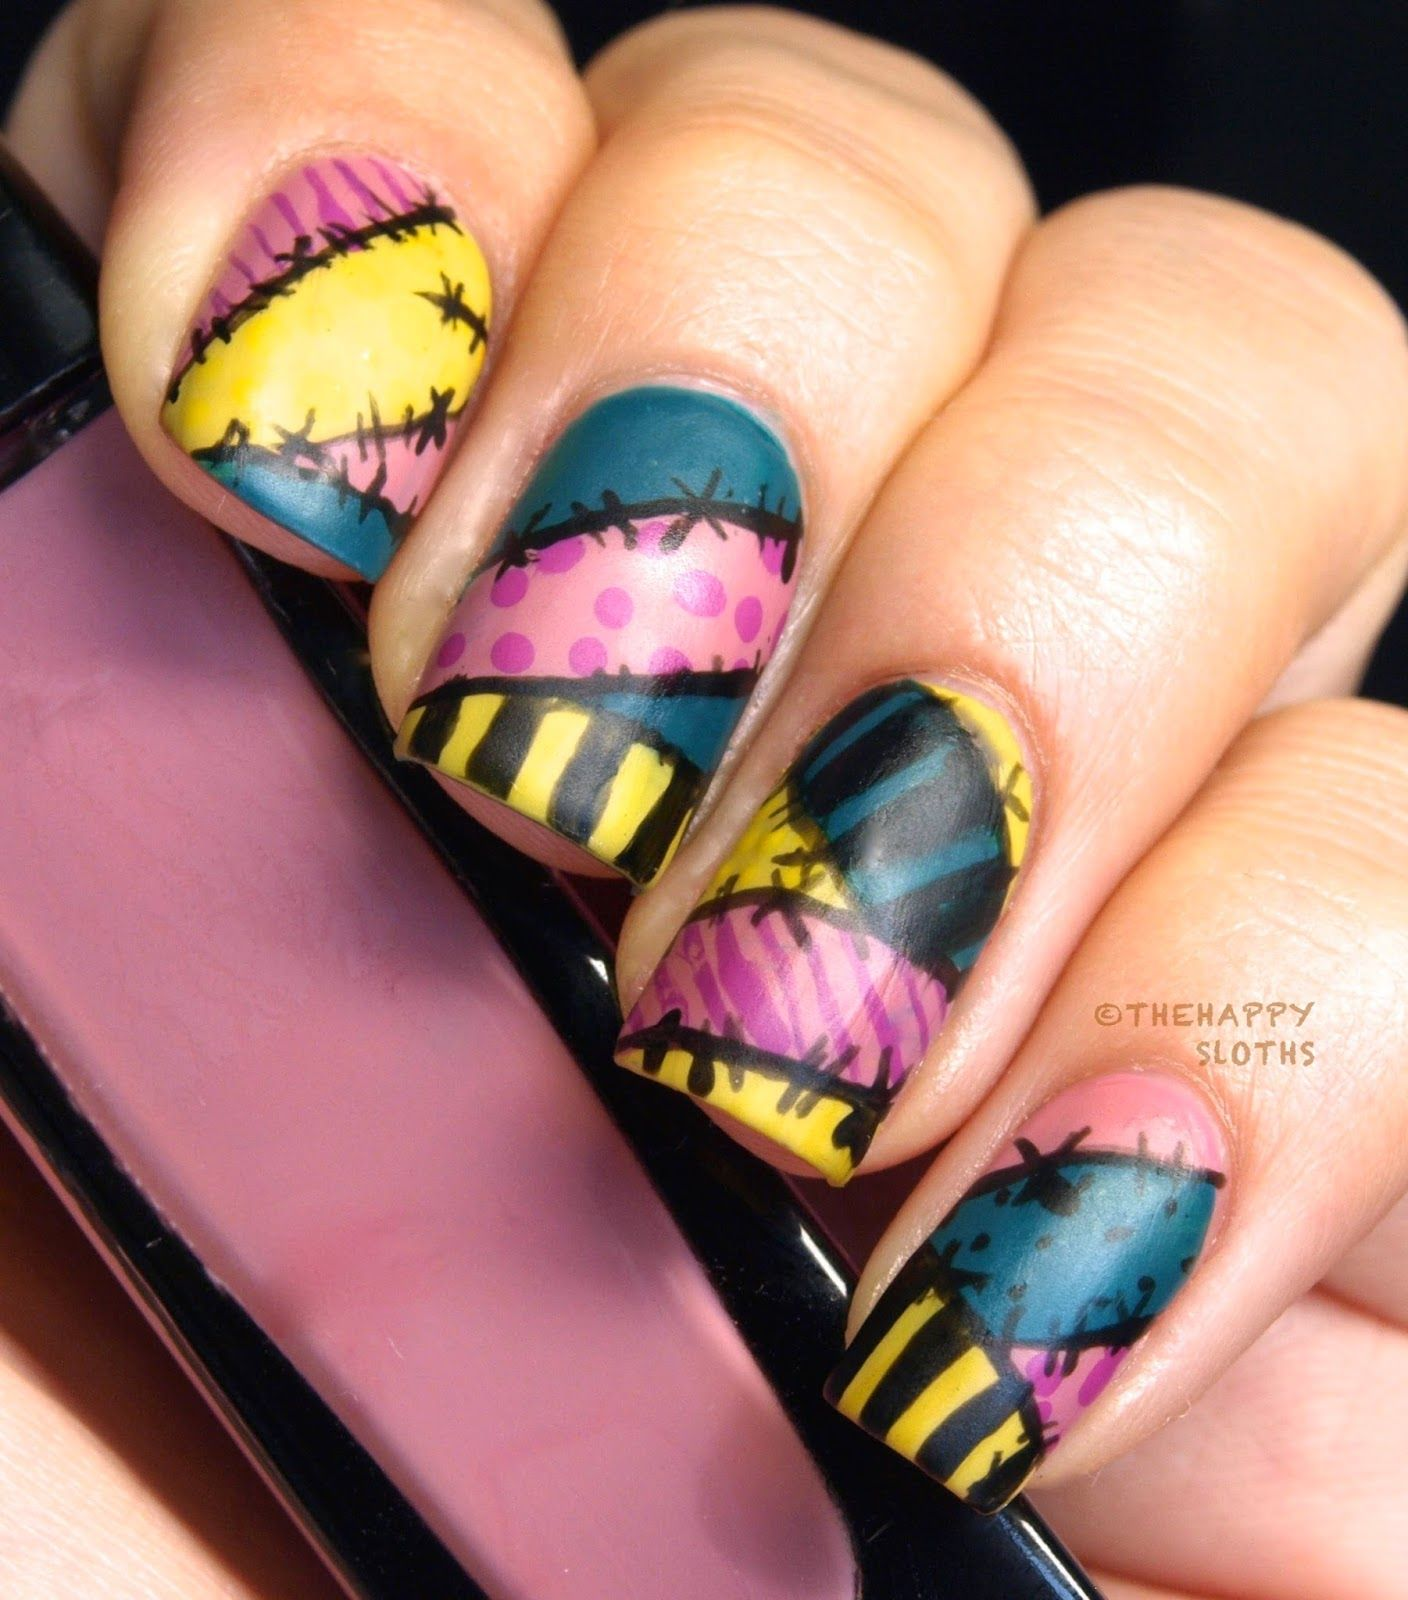 The Nightmare Before Christmas Sally Manicure: My Nail Polish Canada  Halloween Nail Art Contest Entry! (The Happy Sloths) - Nightmare Before Christmas Sally Nails Beauty Pinterest